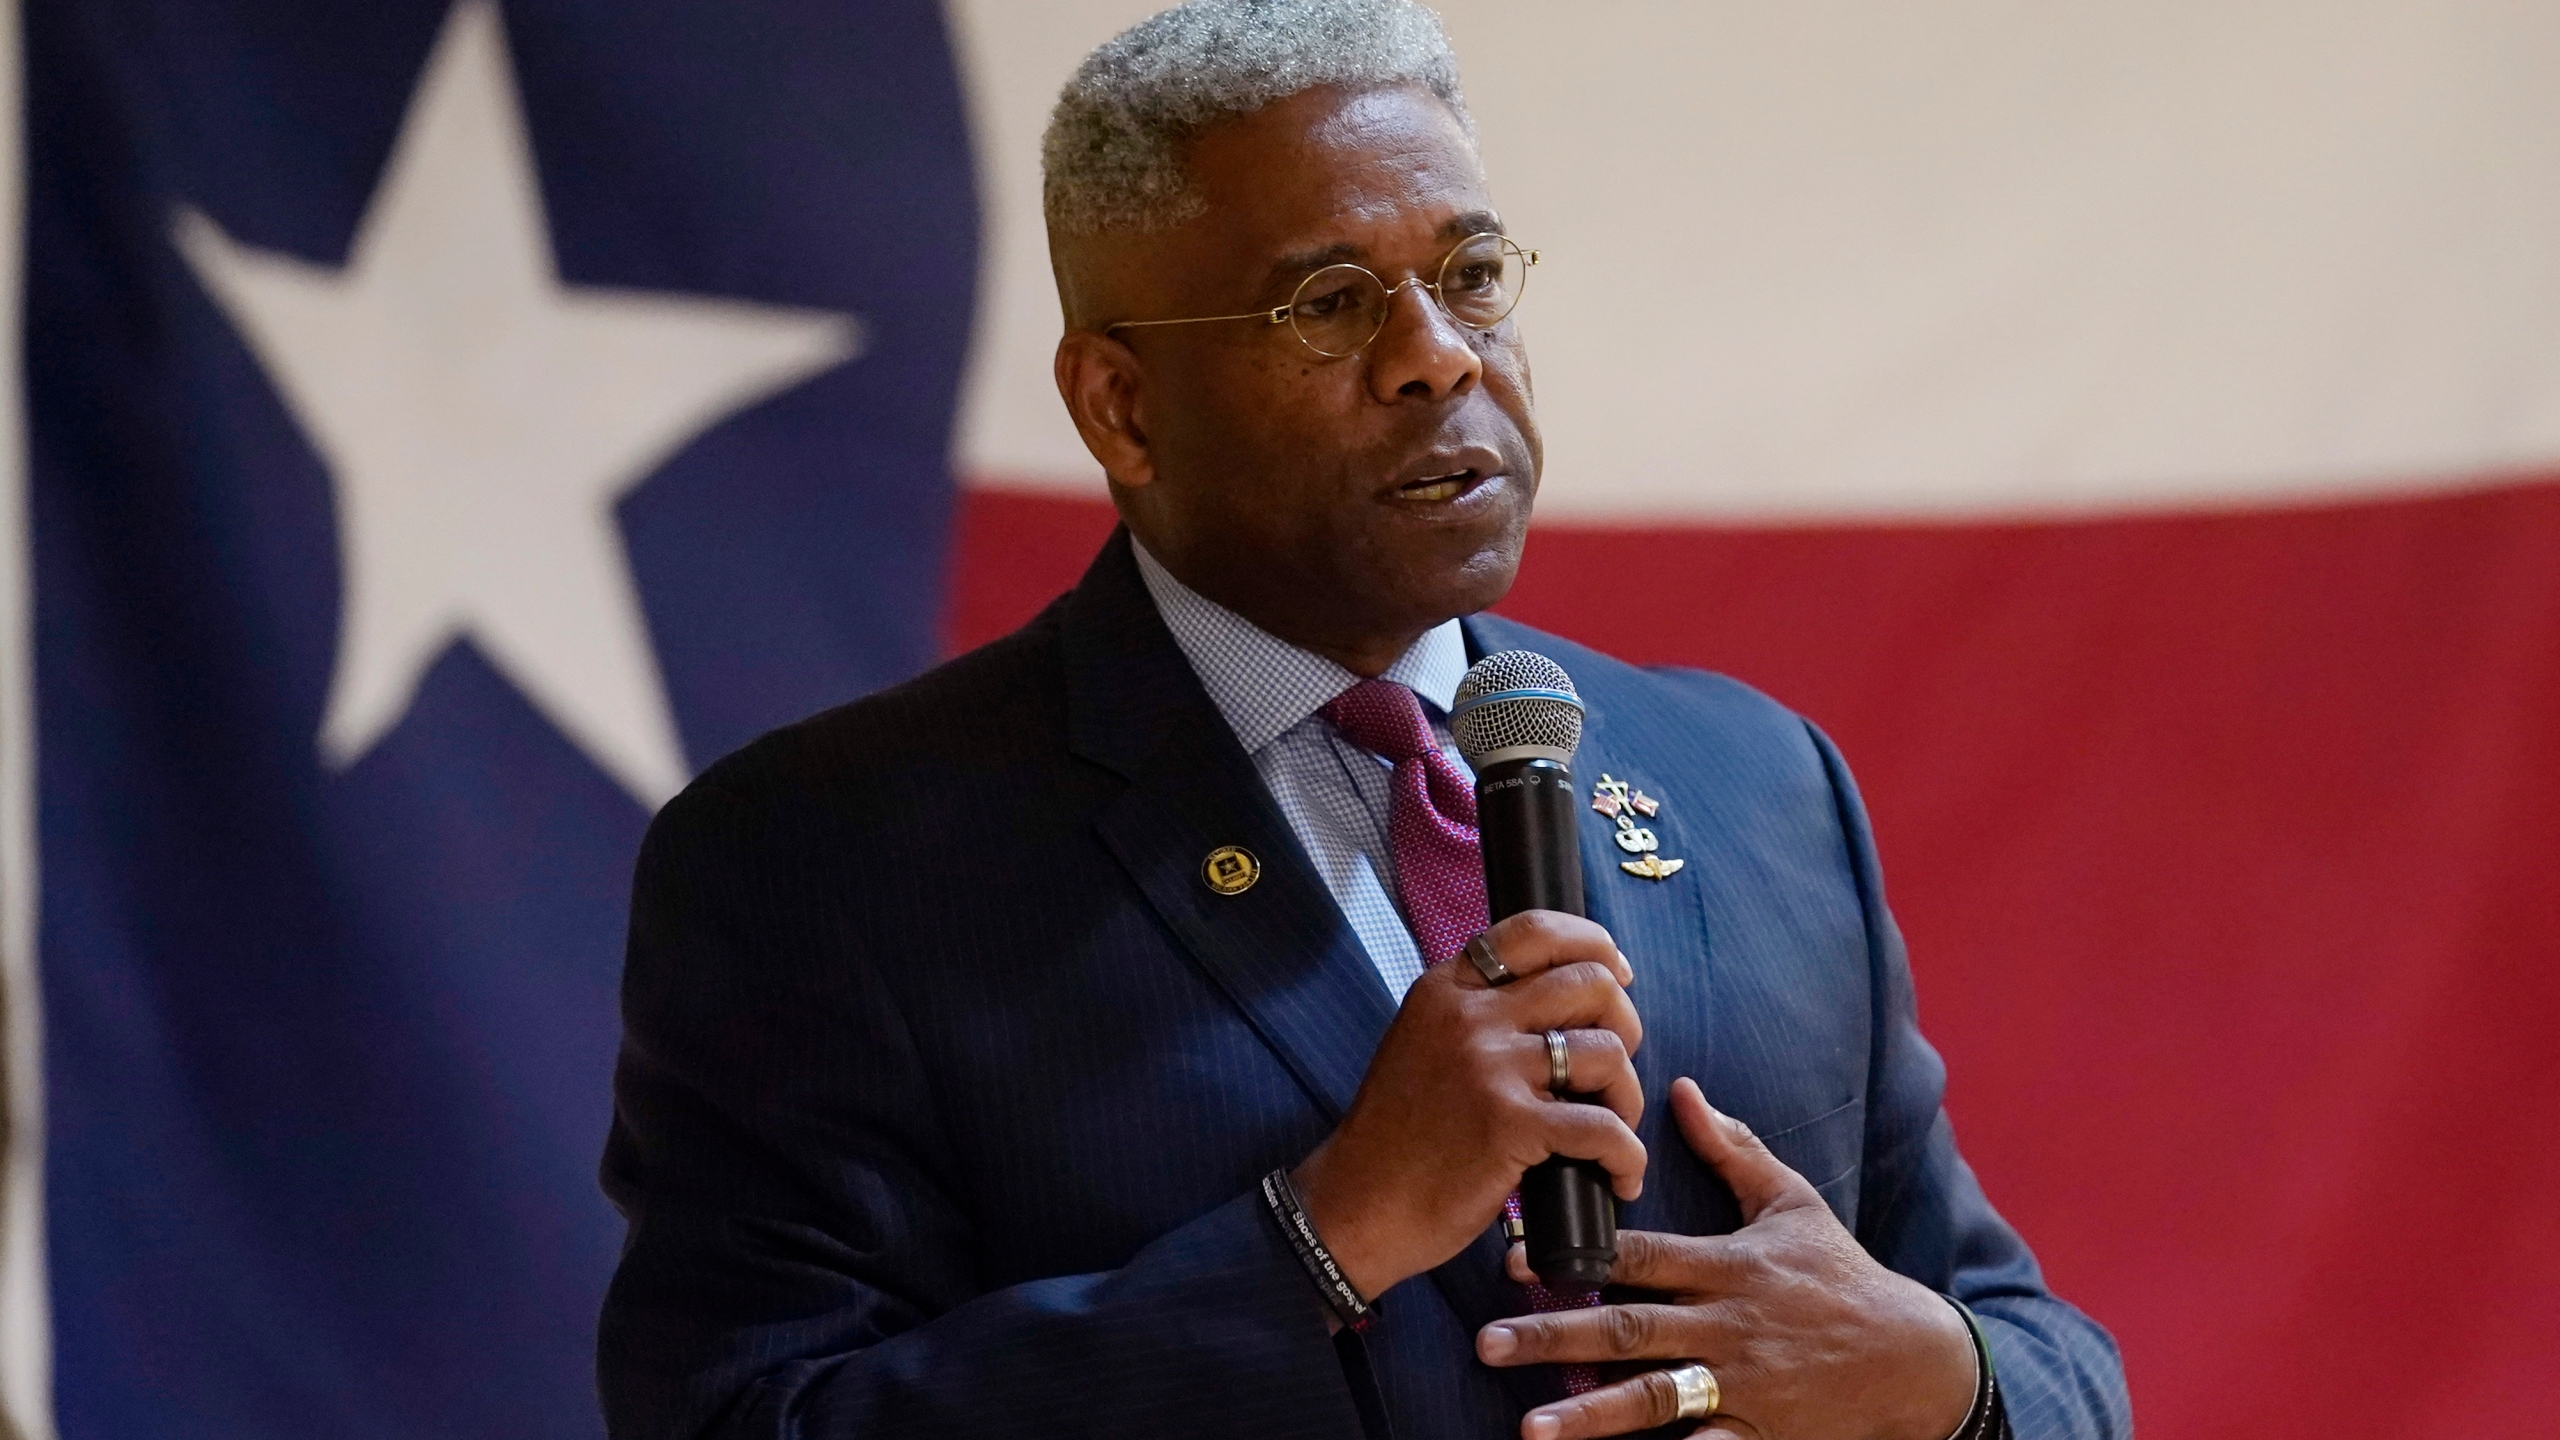 In this Wednesday, Sept. 22, 2021, file photo, Texas gubernatorial hopeful Allen West speaks at the Cameron County Conservatives anniversary celebration, in Harlingen, Texas. West, a candidate for the Republican nomination for governor of Texas, said Saturday, Oct. 9, 2021, that he has received monoclonal antibody injections after being diagnosed with COVID-19 pneumonia. (AP Photo/Eric Gay)